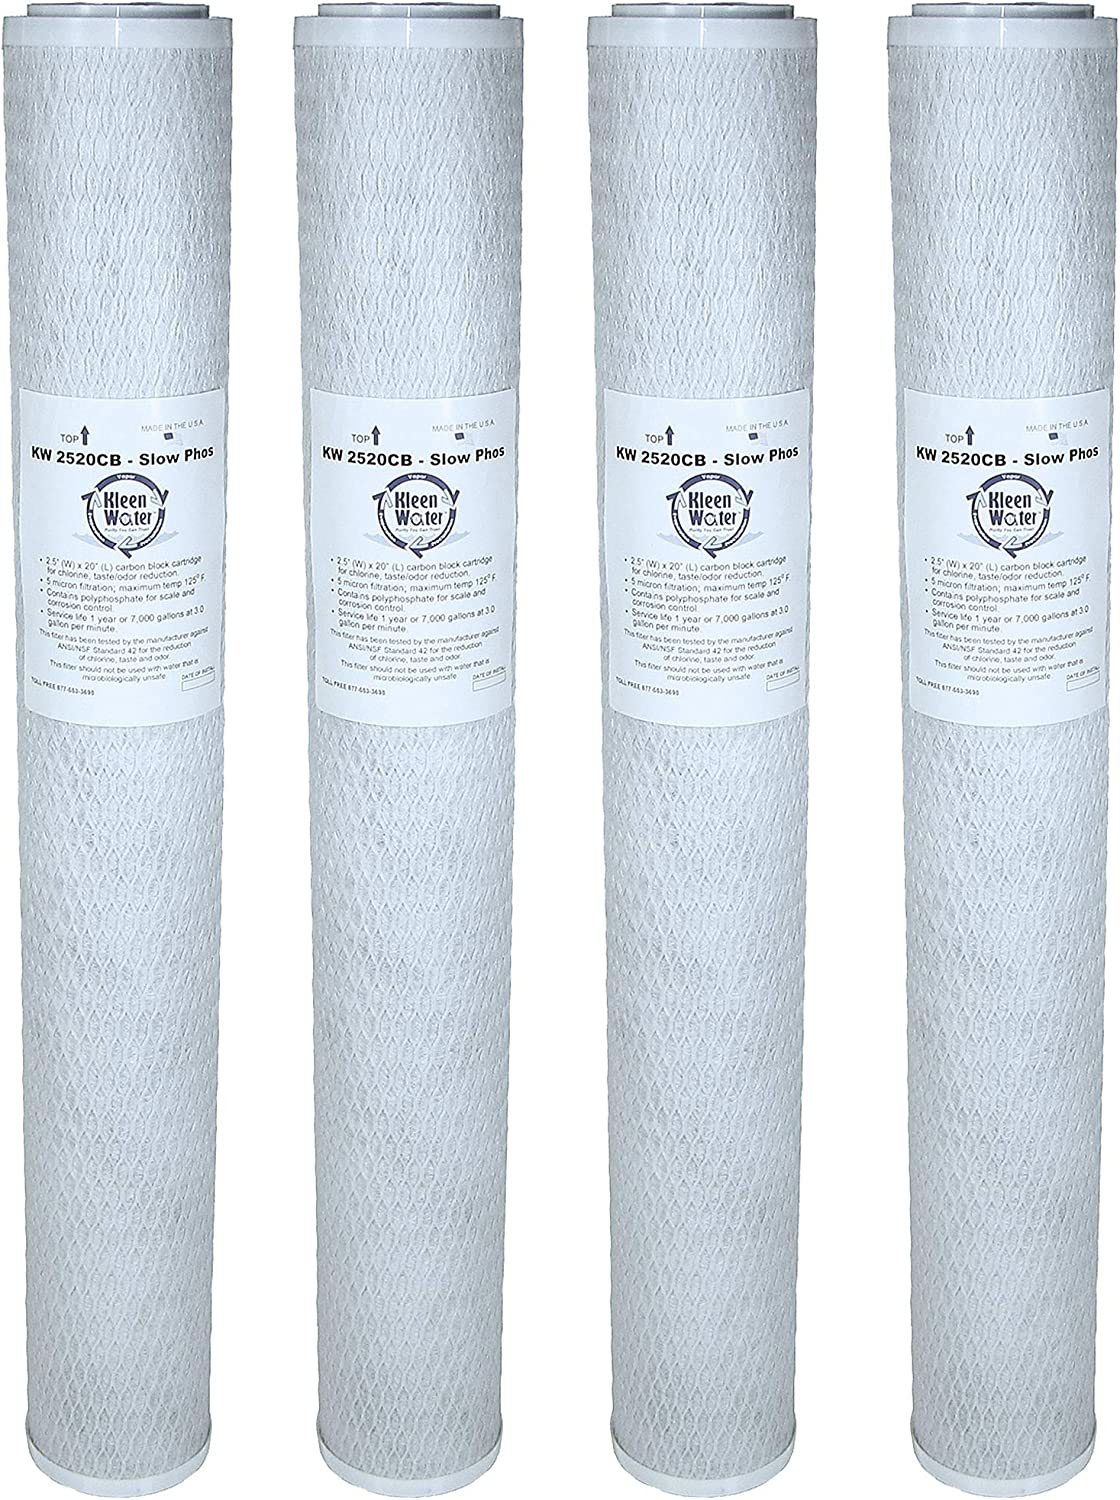 KleenWater KW2520CB-SlowPhos Carbon Block Water Filter Cartridge Pack of 4 Odor Dirt Sediment Filtration Chlorine Replacement for RCFS220